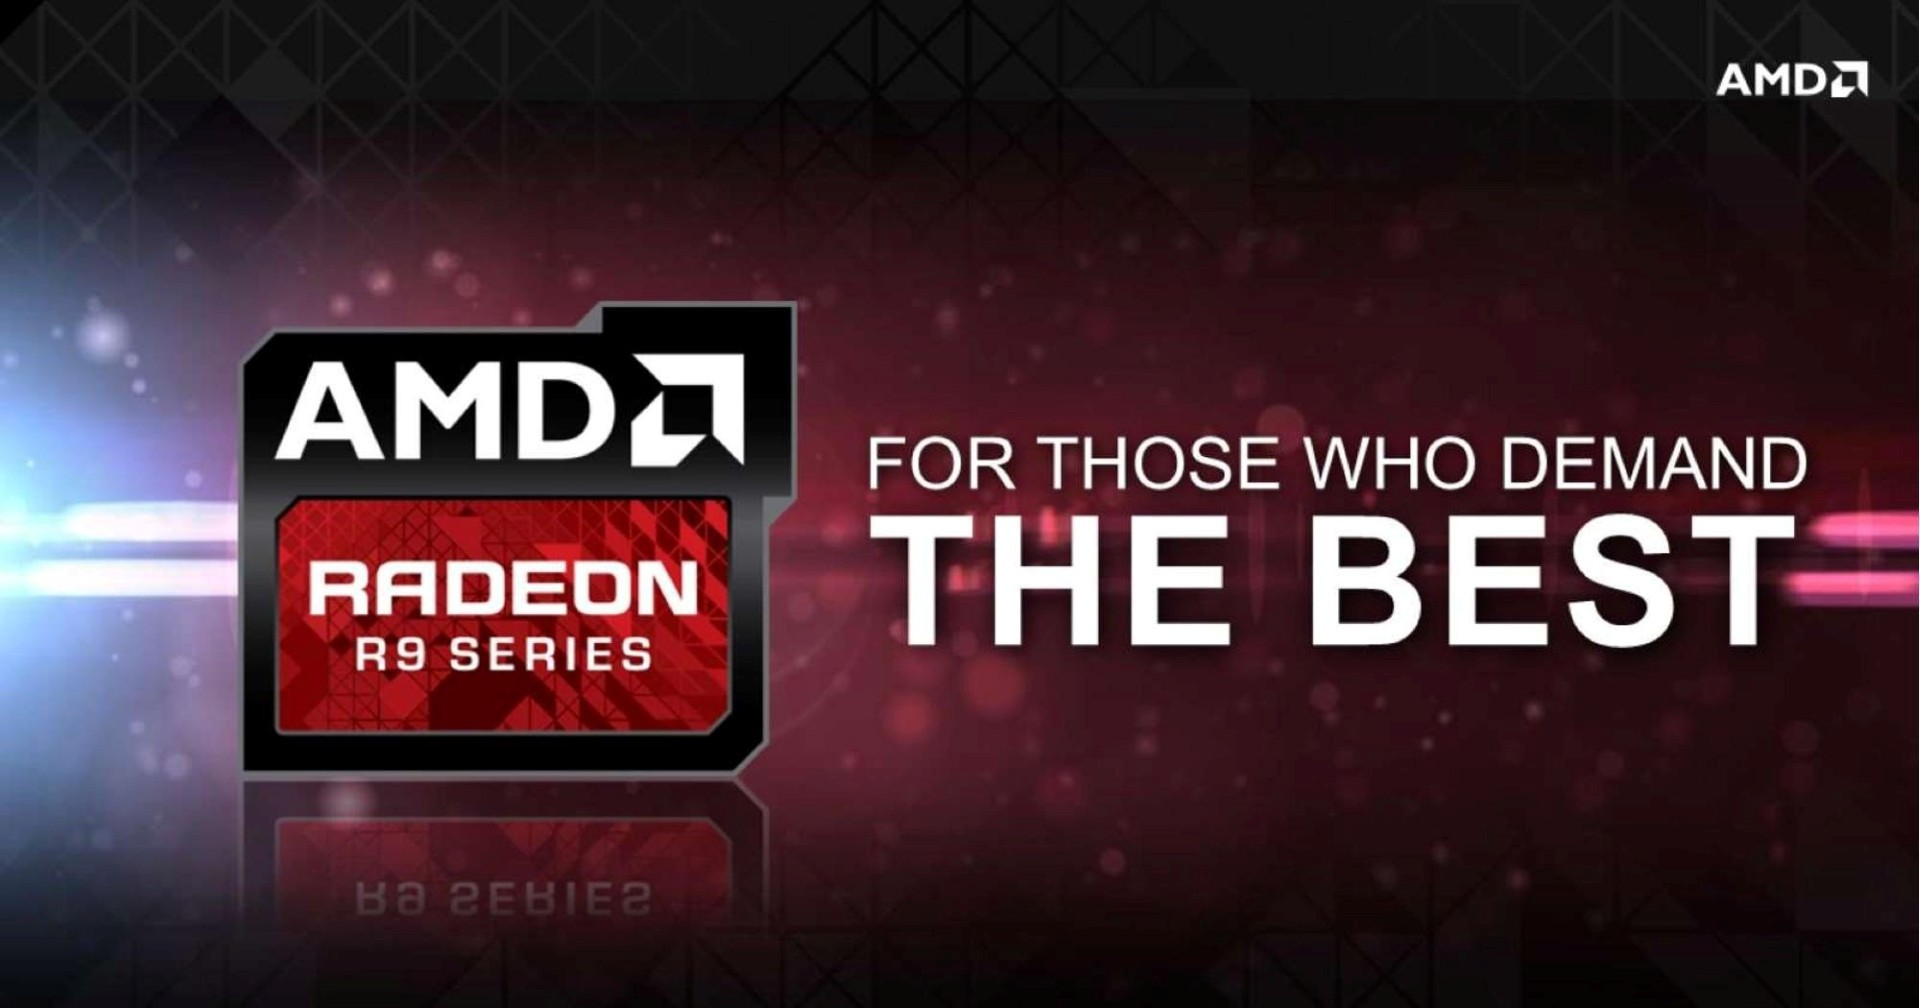 AMD Radeon R9 290X and Radeon R9 290 Series Official